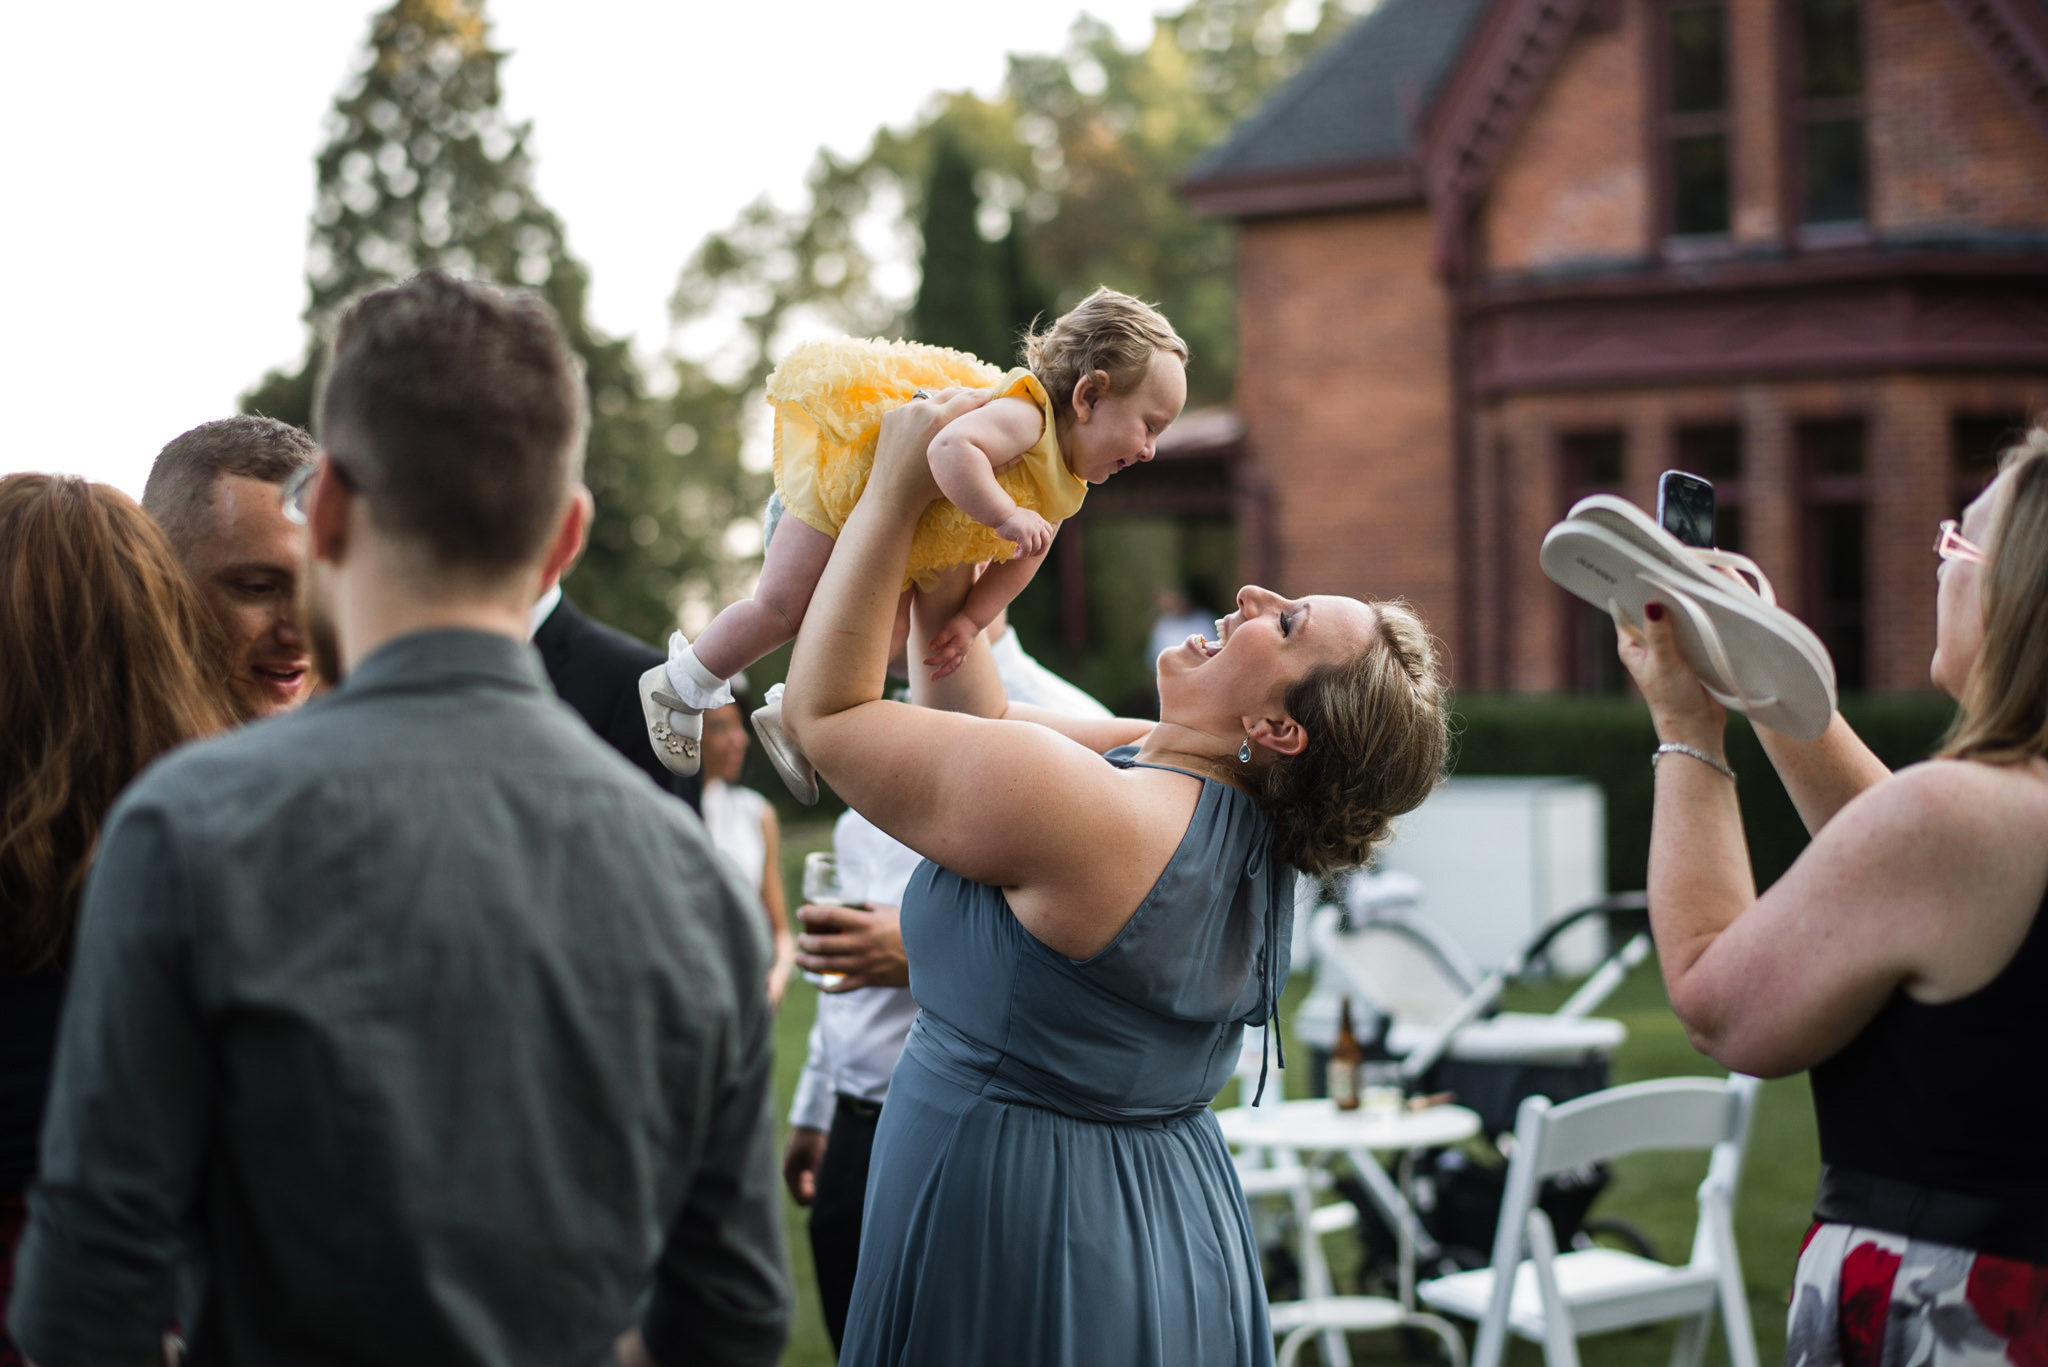 235-guest-candids-cocktail-hour-wedding-photographer-toronto-penryn-park.jpg